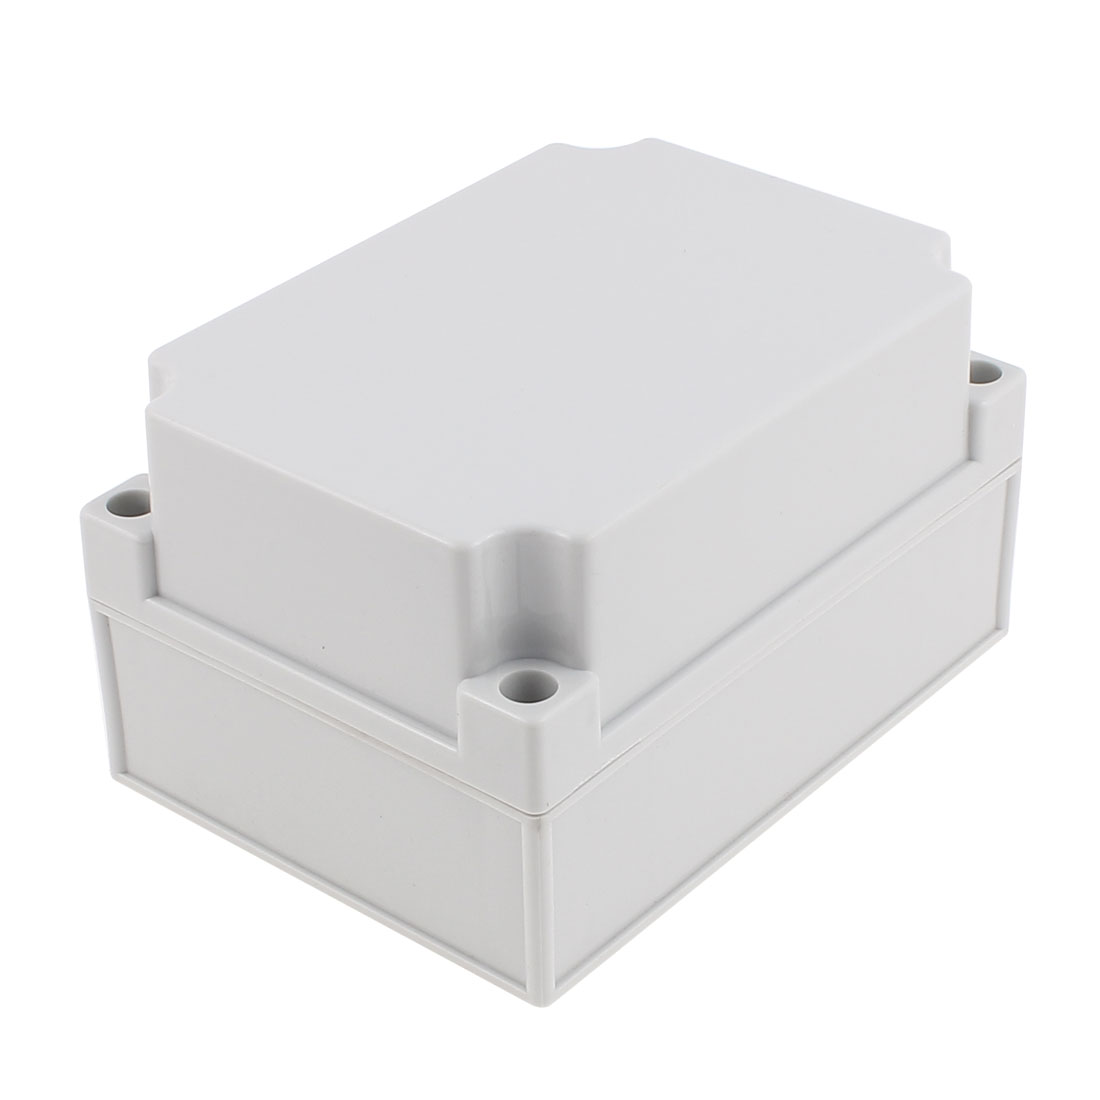 175 x 125 x 100mm Dustproof IP65 Junction Box Terminal Connecting Box Enclosure